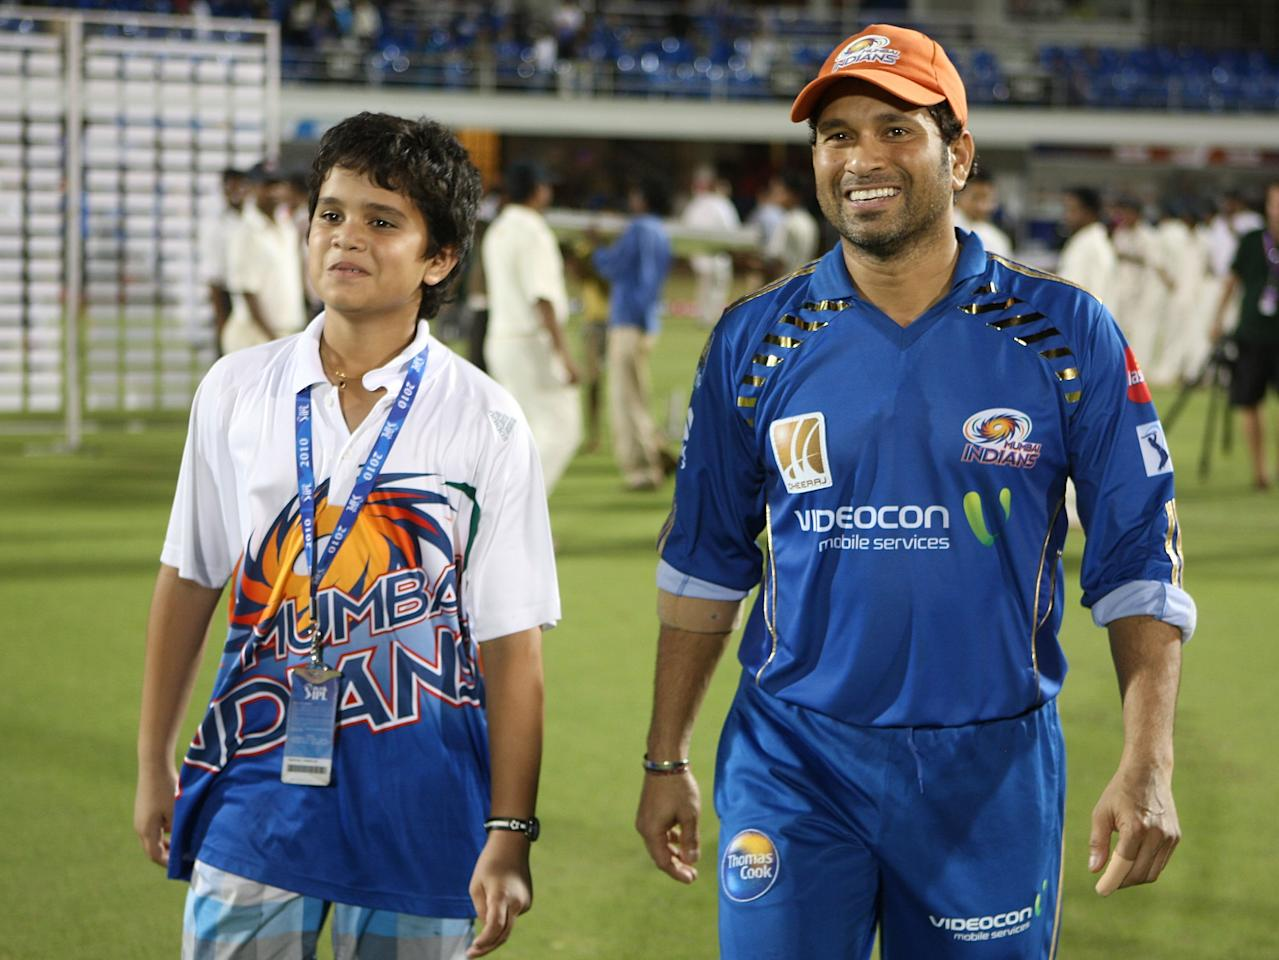 MUMBAI, INDIA - APRIL 13:  Sachin Tendulkar (R) of the Mumbai Indians with son Arjun Tendulkar (L) during the 2010 DLF Indian Premier League T20 group stage match between Mumbai Indians and the Delhi Daredevils played at Brabourne Cricket Stadium on April 13, 2010 in Mumbai, India.  (Photo by Chirag Wakaskar-IPL 2010/IPL via Getty Images)